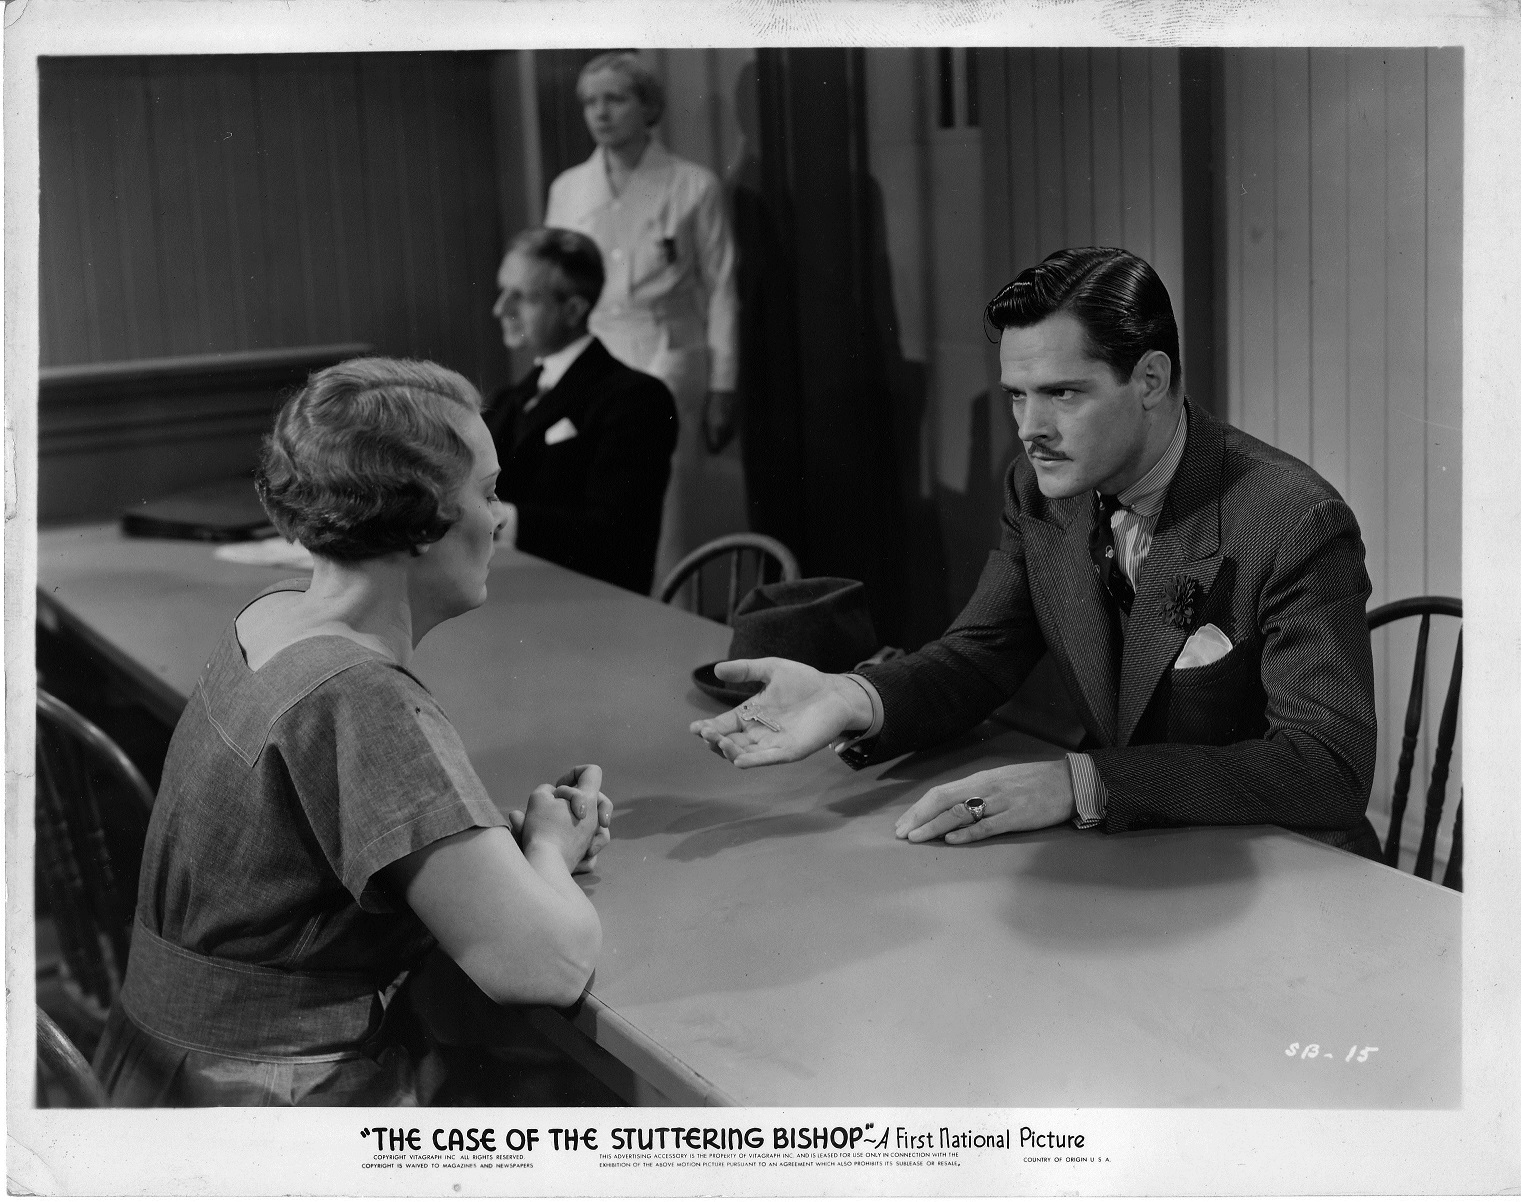 Mira McKinney and Donald Woods in The Case of the Stuttering Bishop (1937)